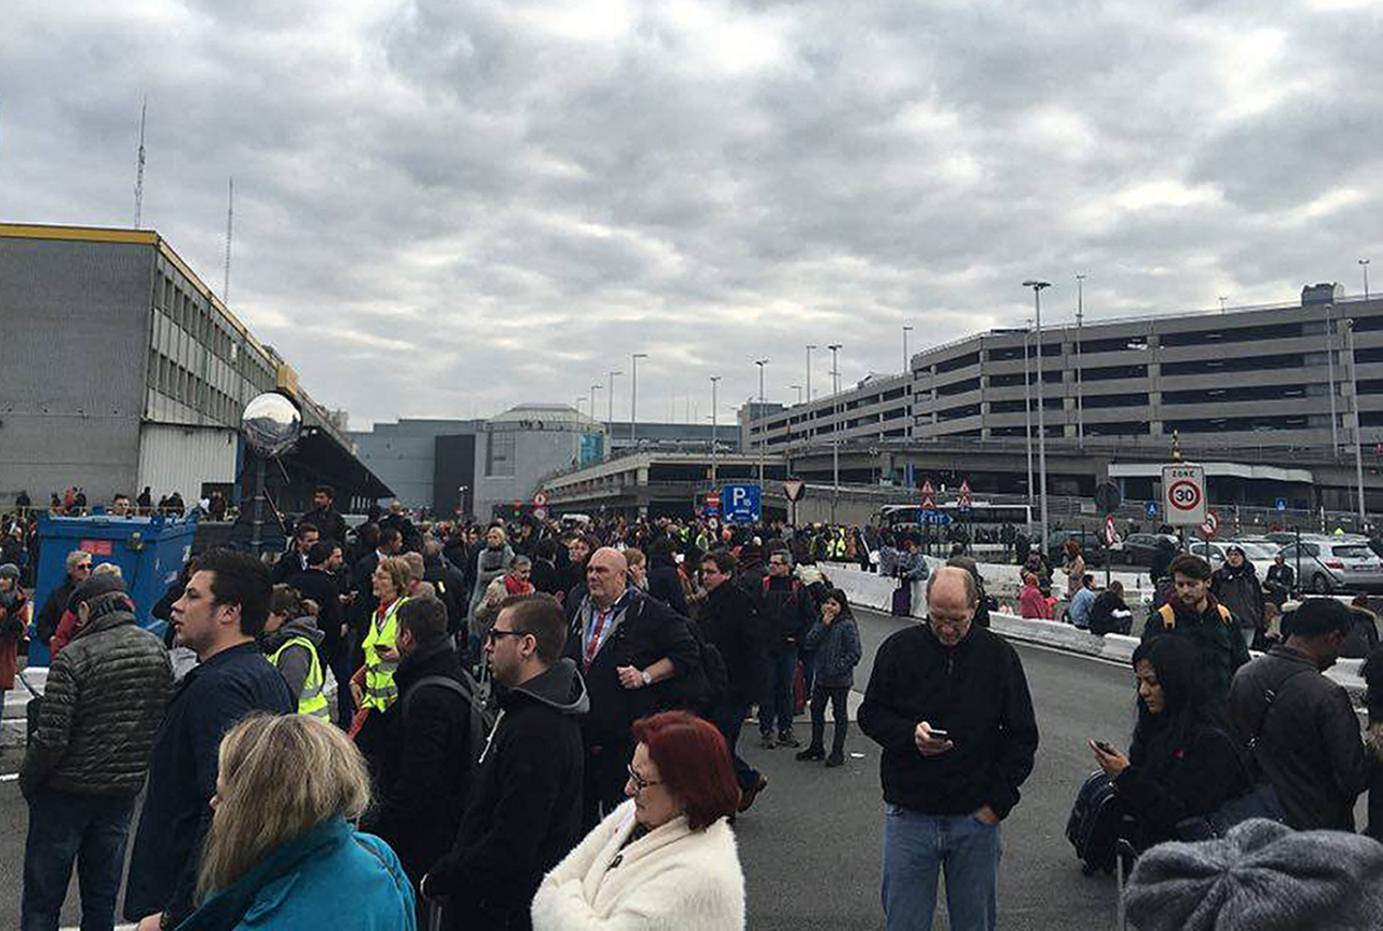 The scene at Brussels Airport after two explosions were heard. Picture by Bart van Meele/Facebook.